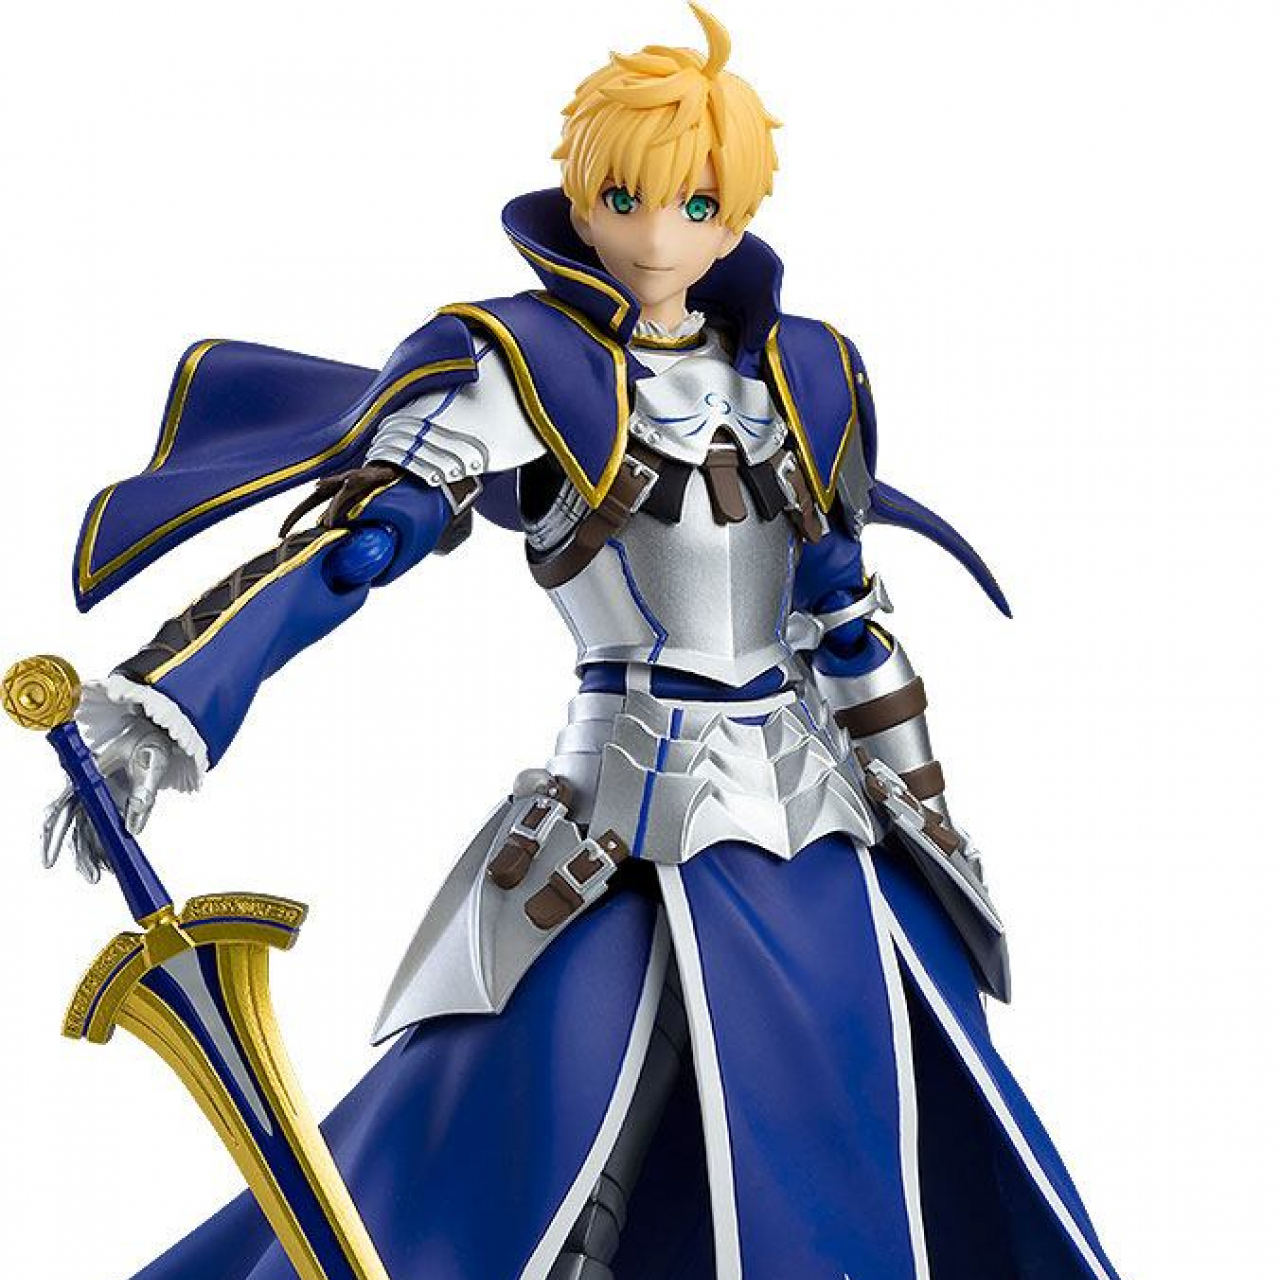 Fate/Grand Order Figma Action Figure Saber/Arthur Pendragon (Prototype) 16 cm